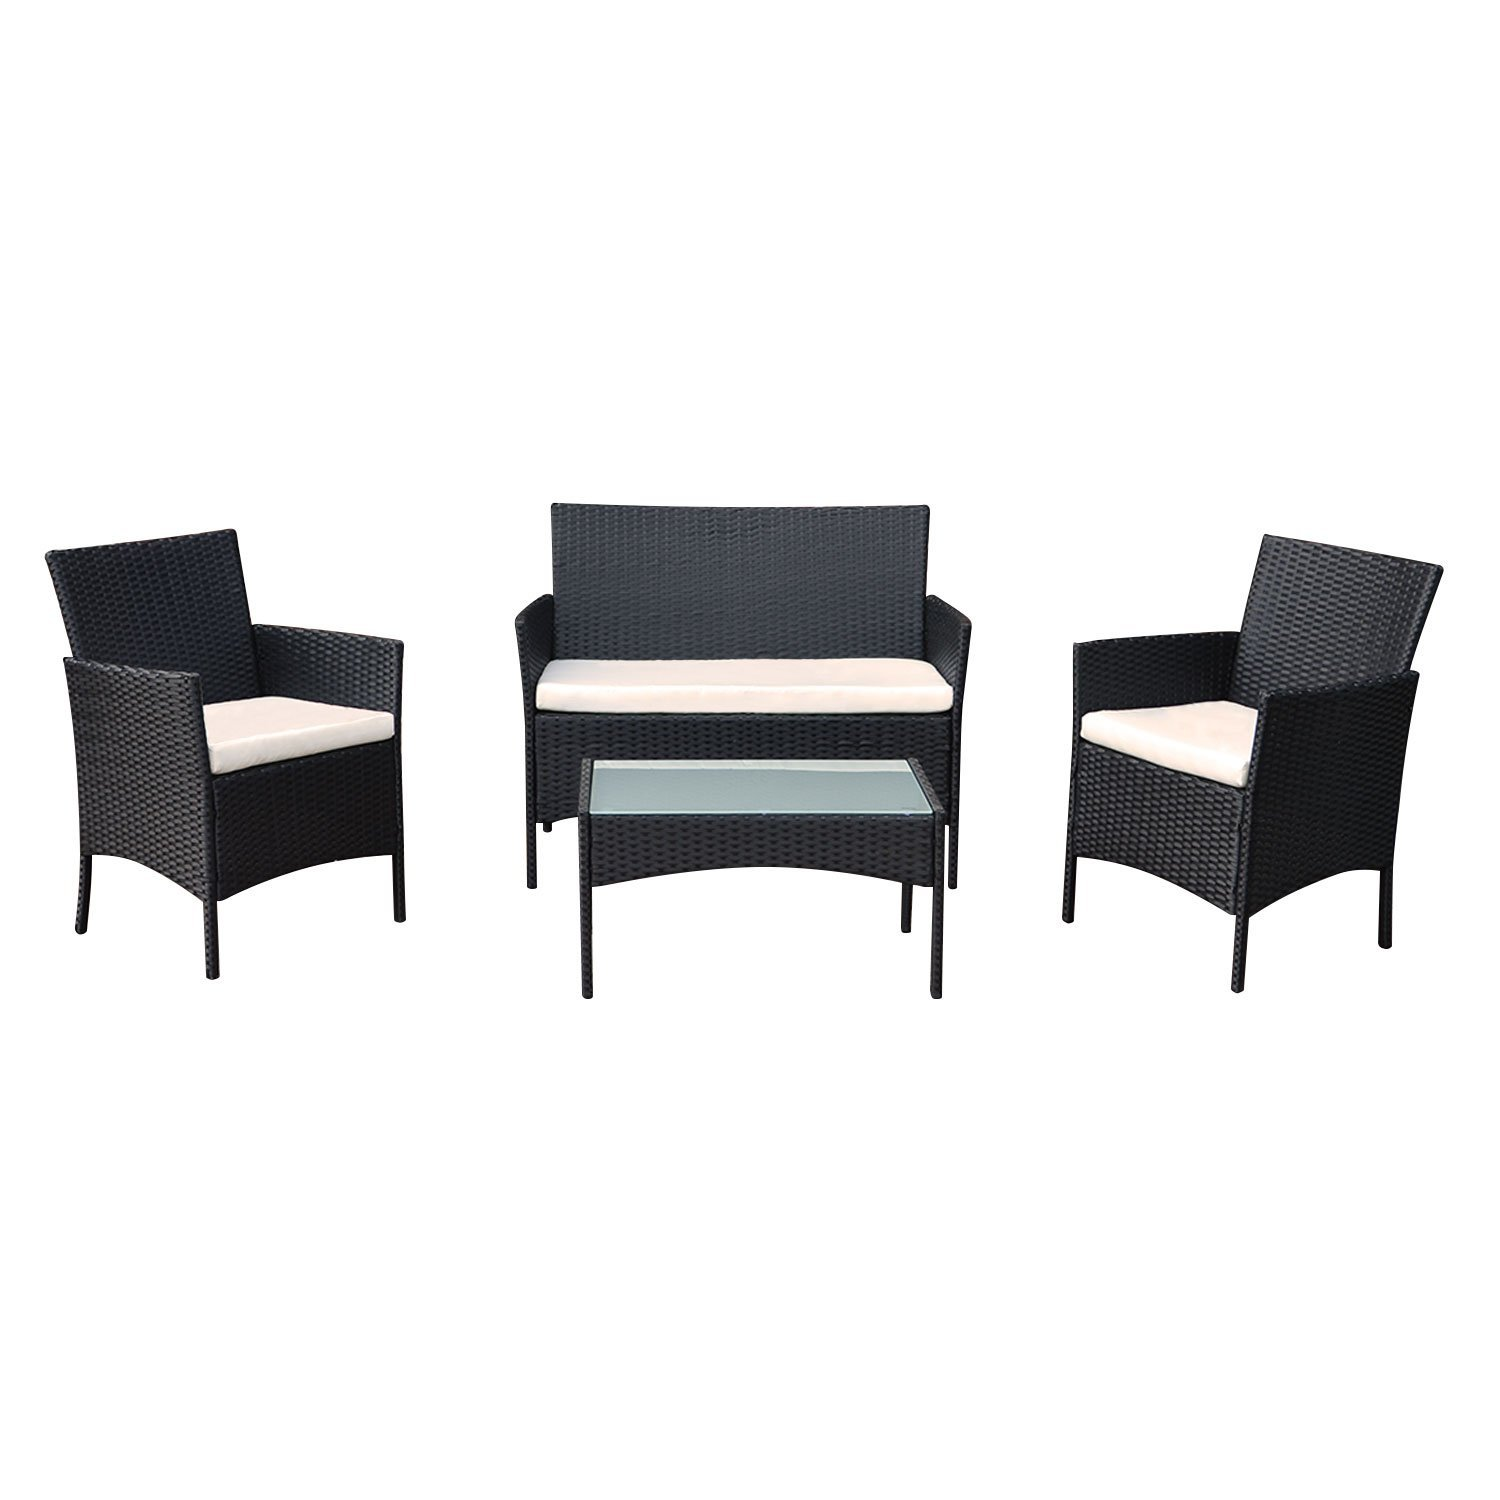 le mobilier salon de jardin steph comminges location saint gaudens 31. Black Bedroom Furniture Sets. Home Design Ideas